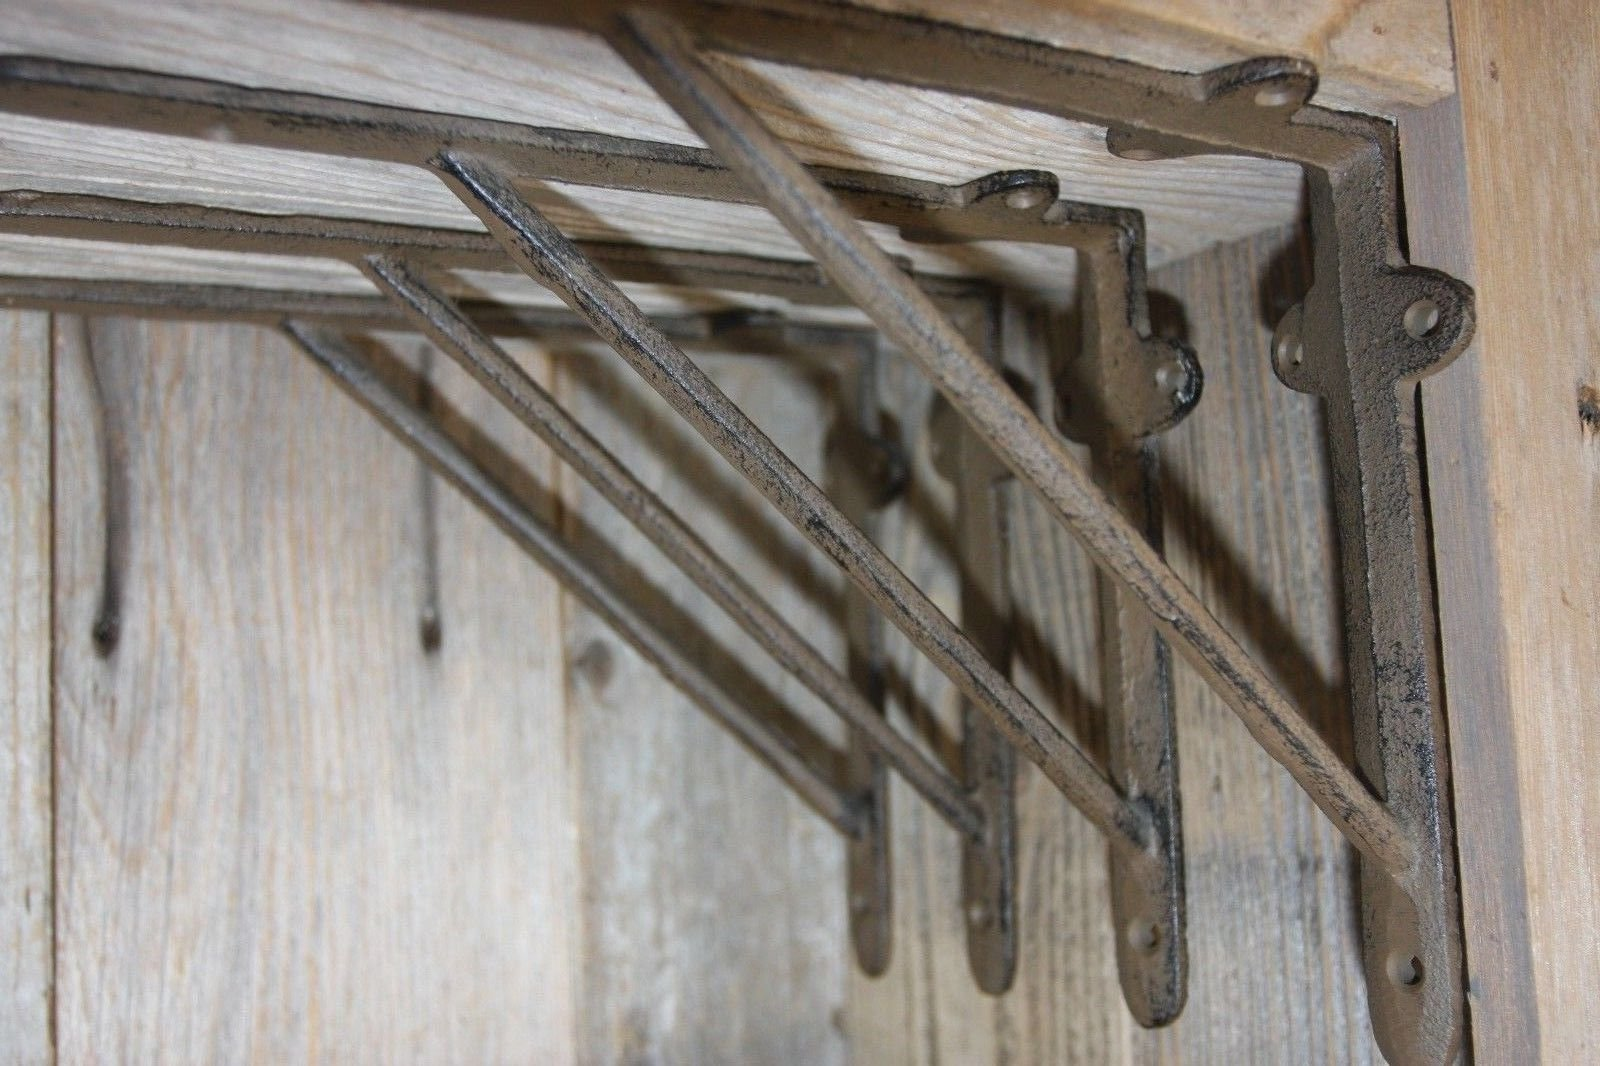 Rustic Farmhouse Open Shelving Shelf Brackets Solid Cast Iron 9 inches, Set of 4